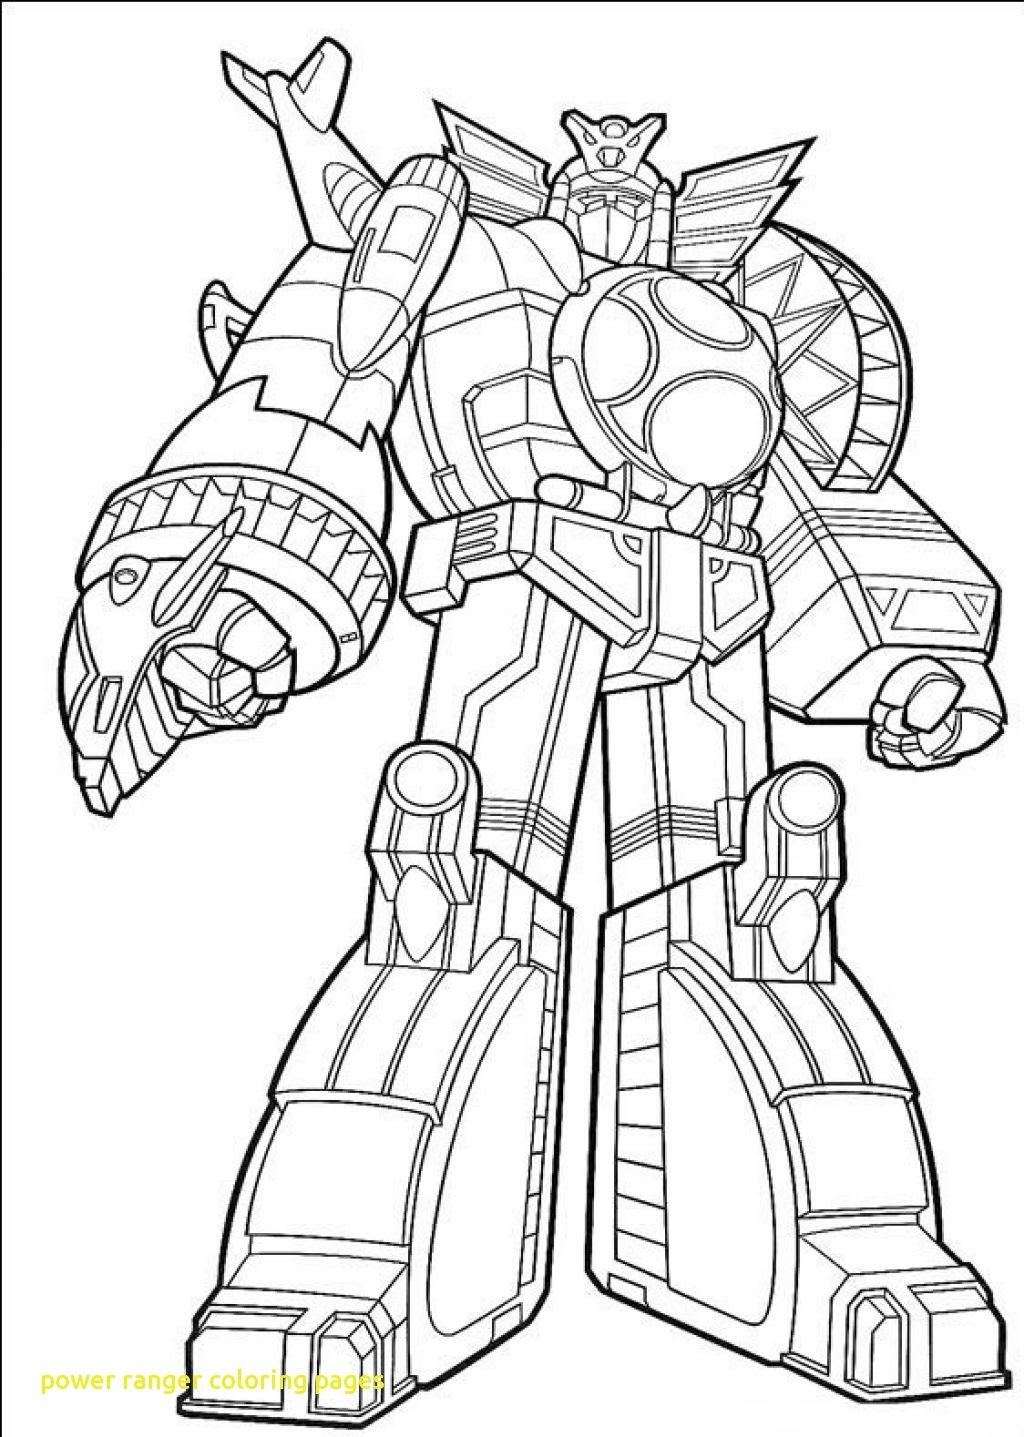 Megazord Coloring Pages : megazord, coloring, pages, Power, Rangers, Megazord, Coloring, Pages, Printable